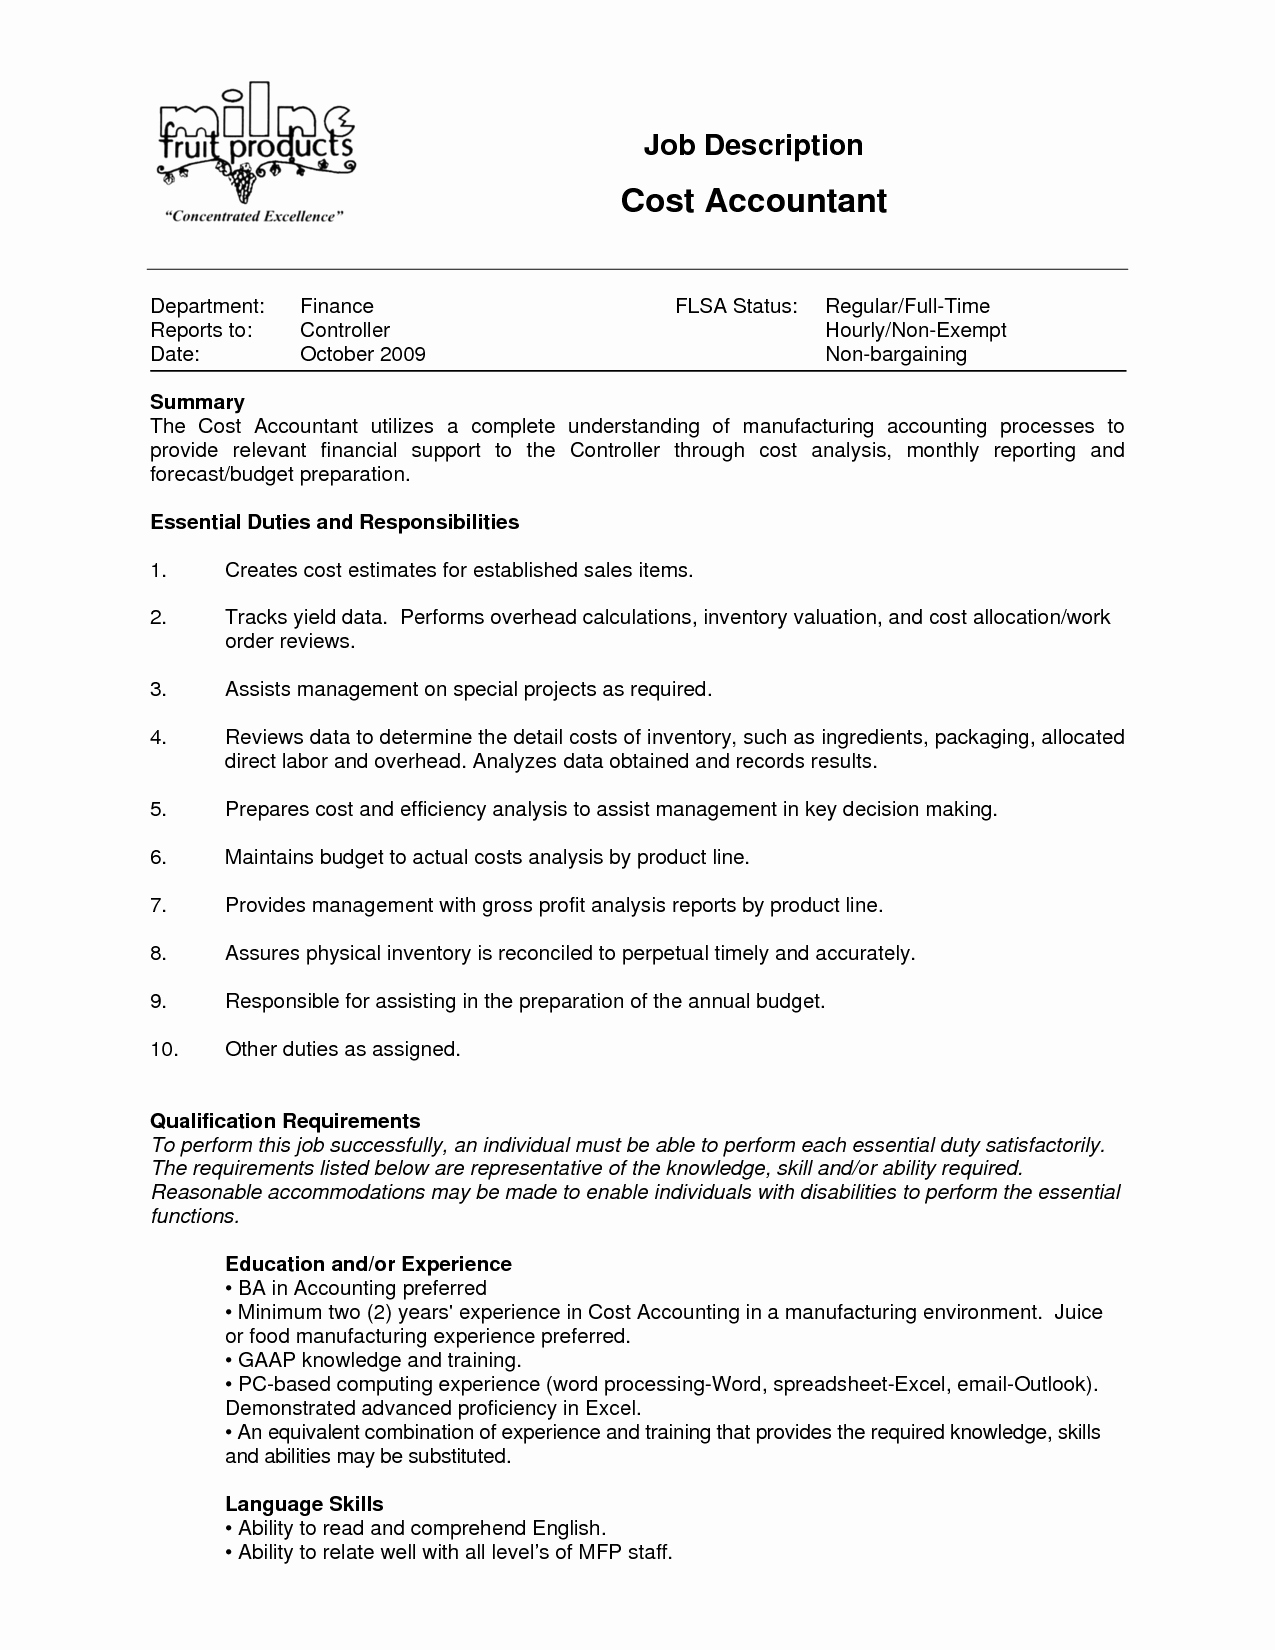 Cost Accountant Job Description Template Templates Data